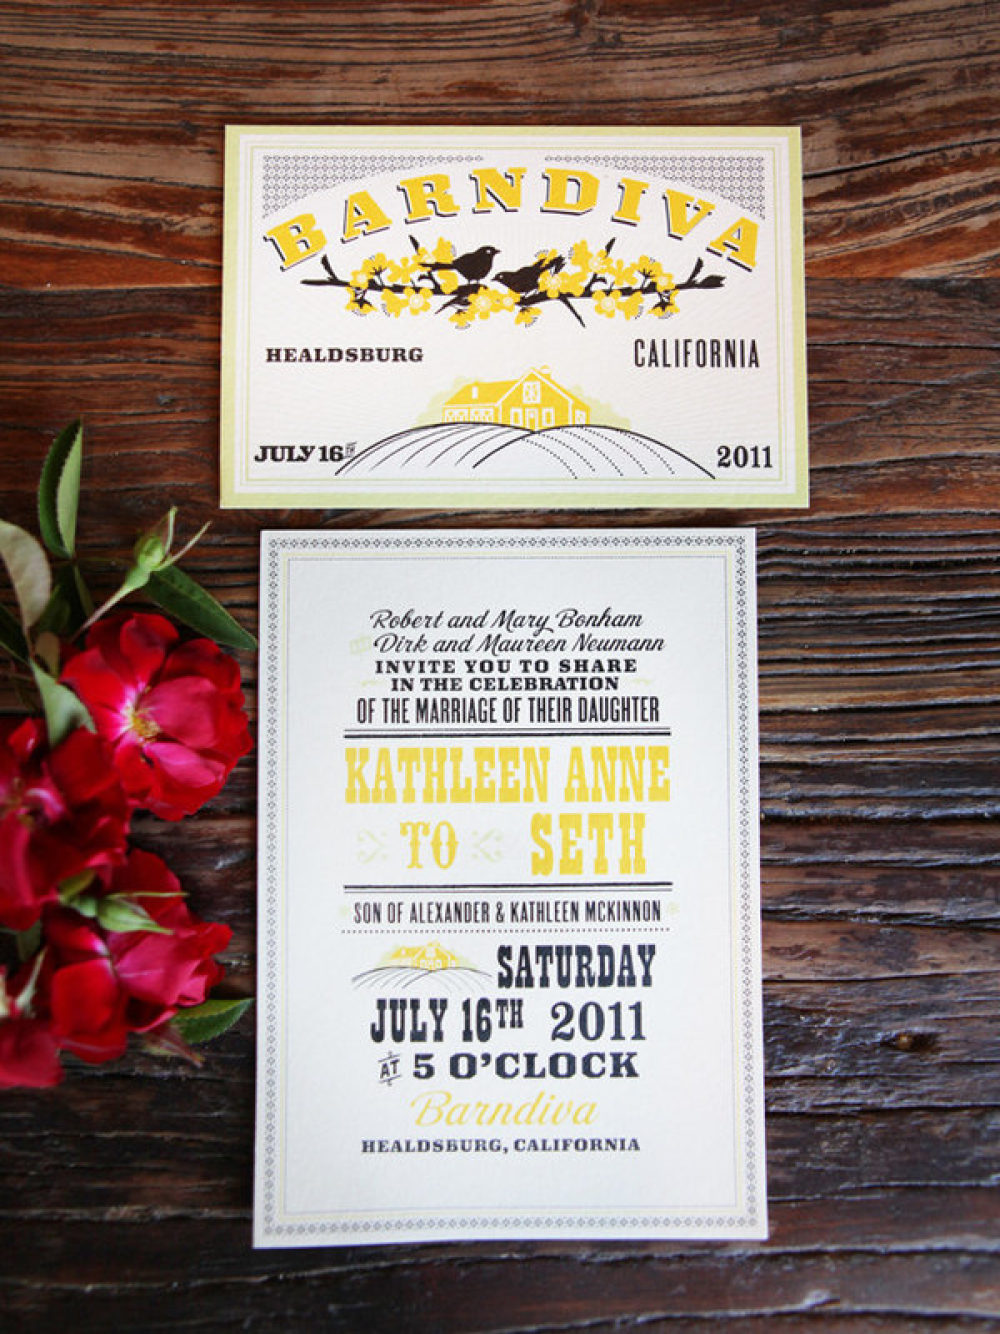 Barndiva Wedding 6